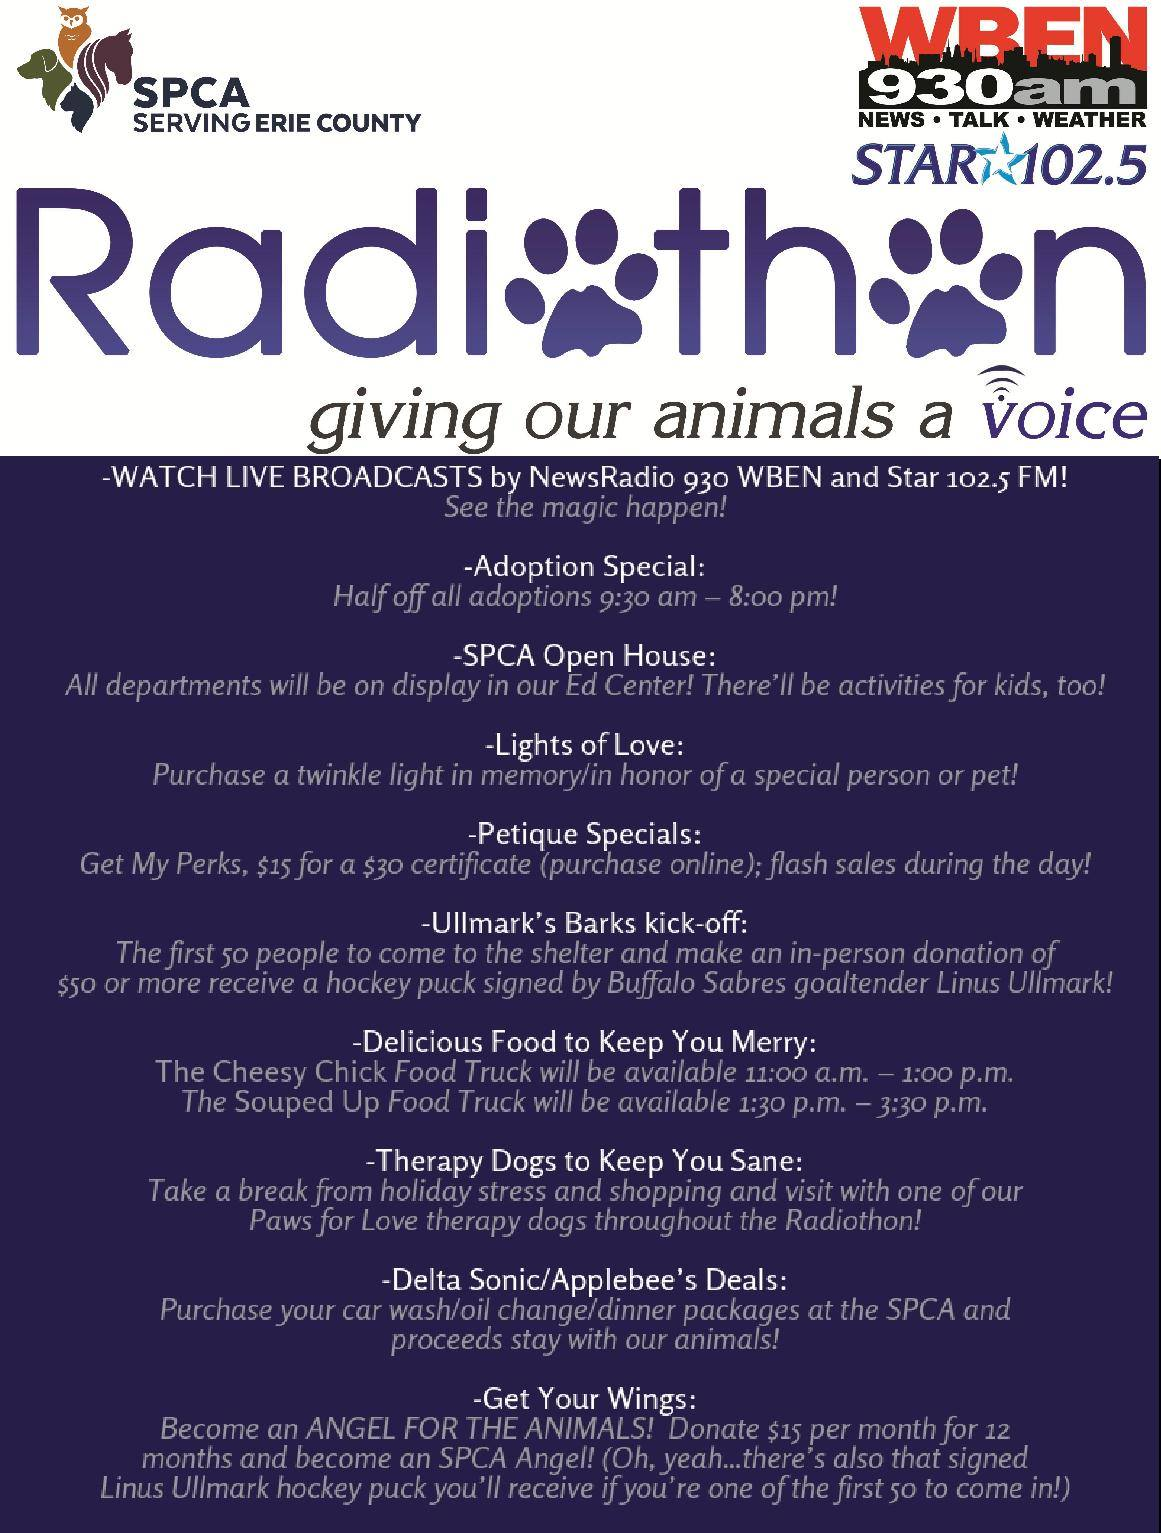 Click this image to learn more about THE 10 DAYS OF SPCA!